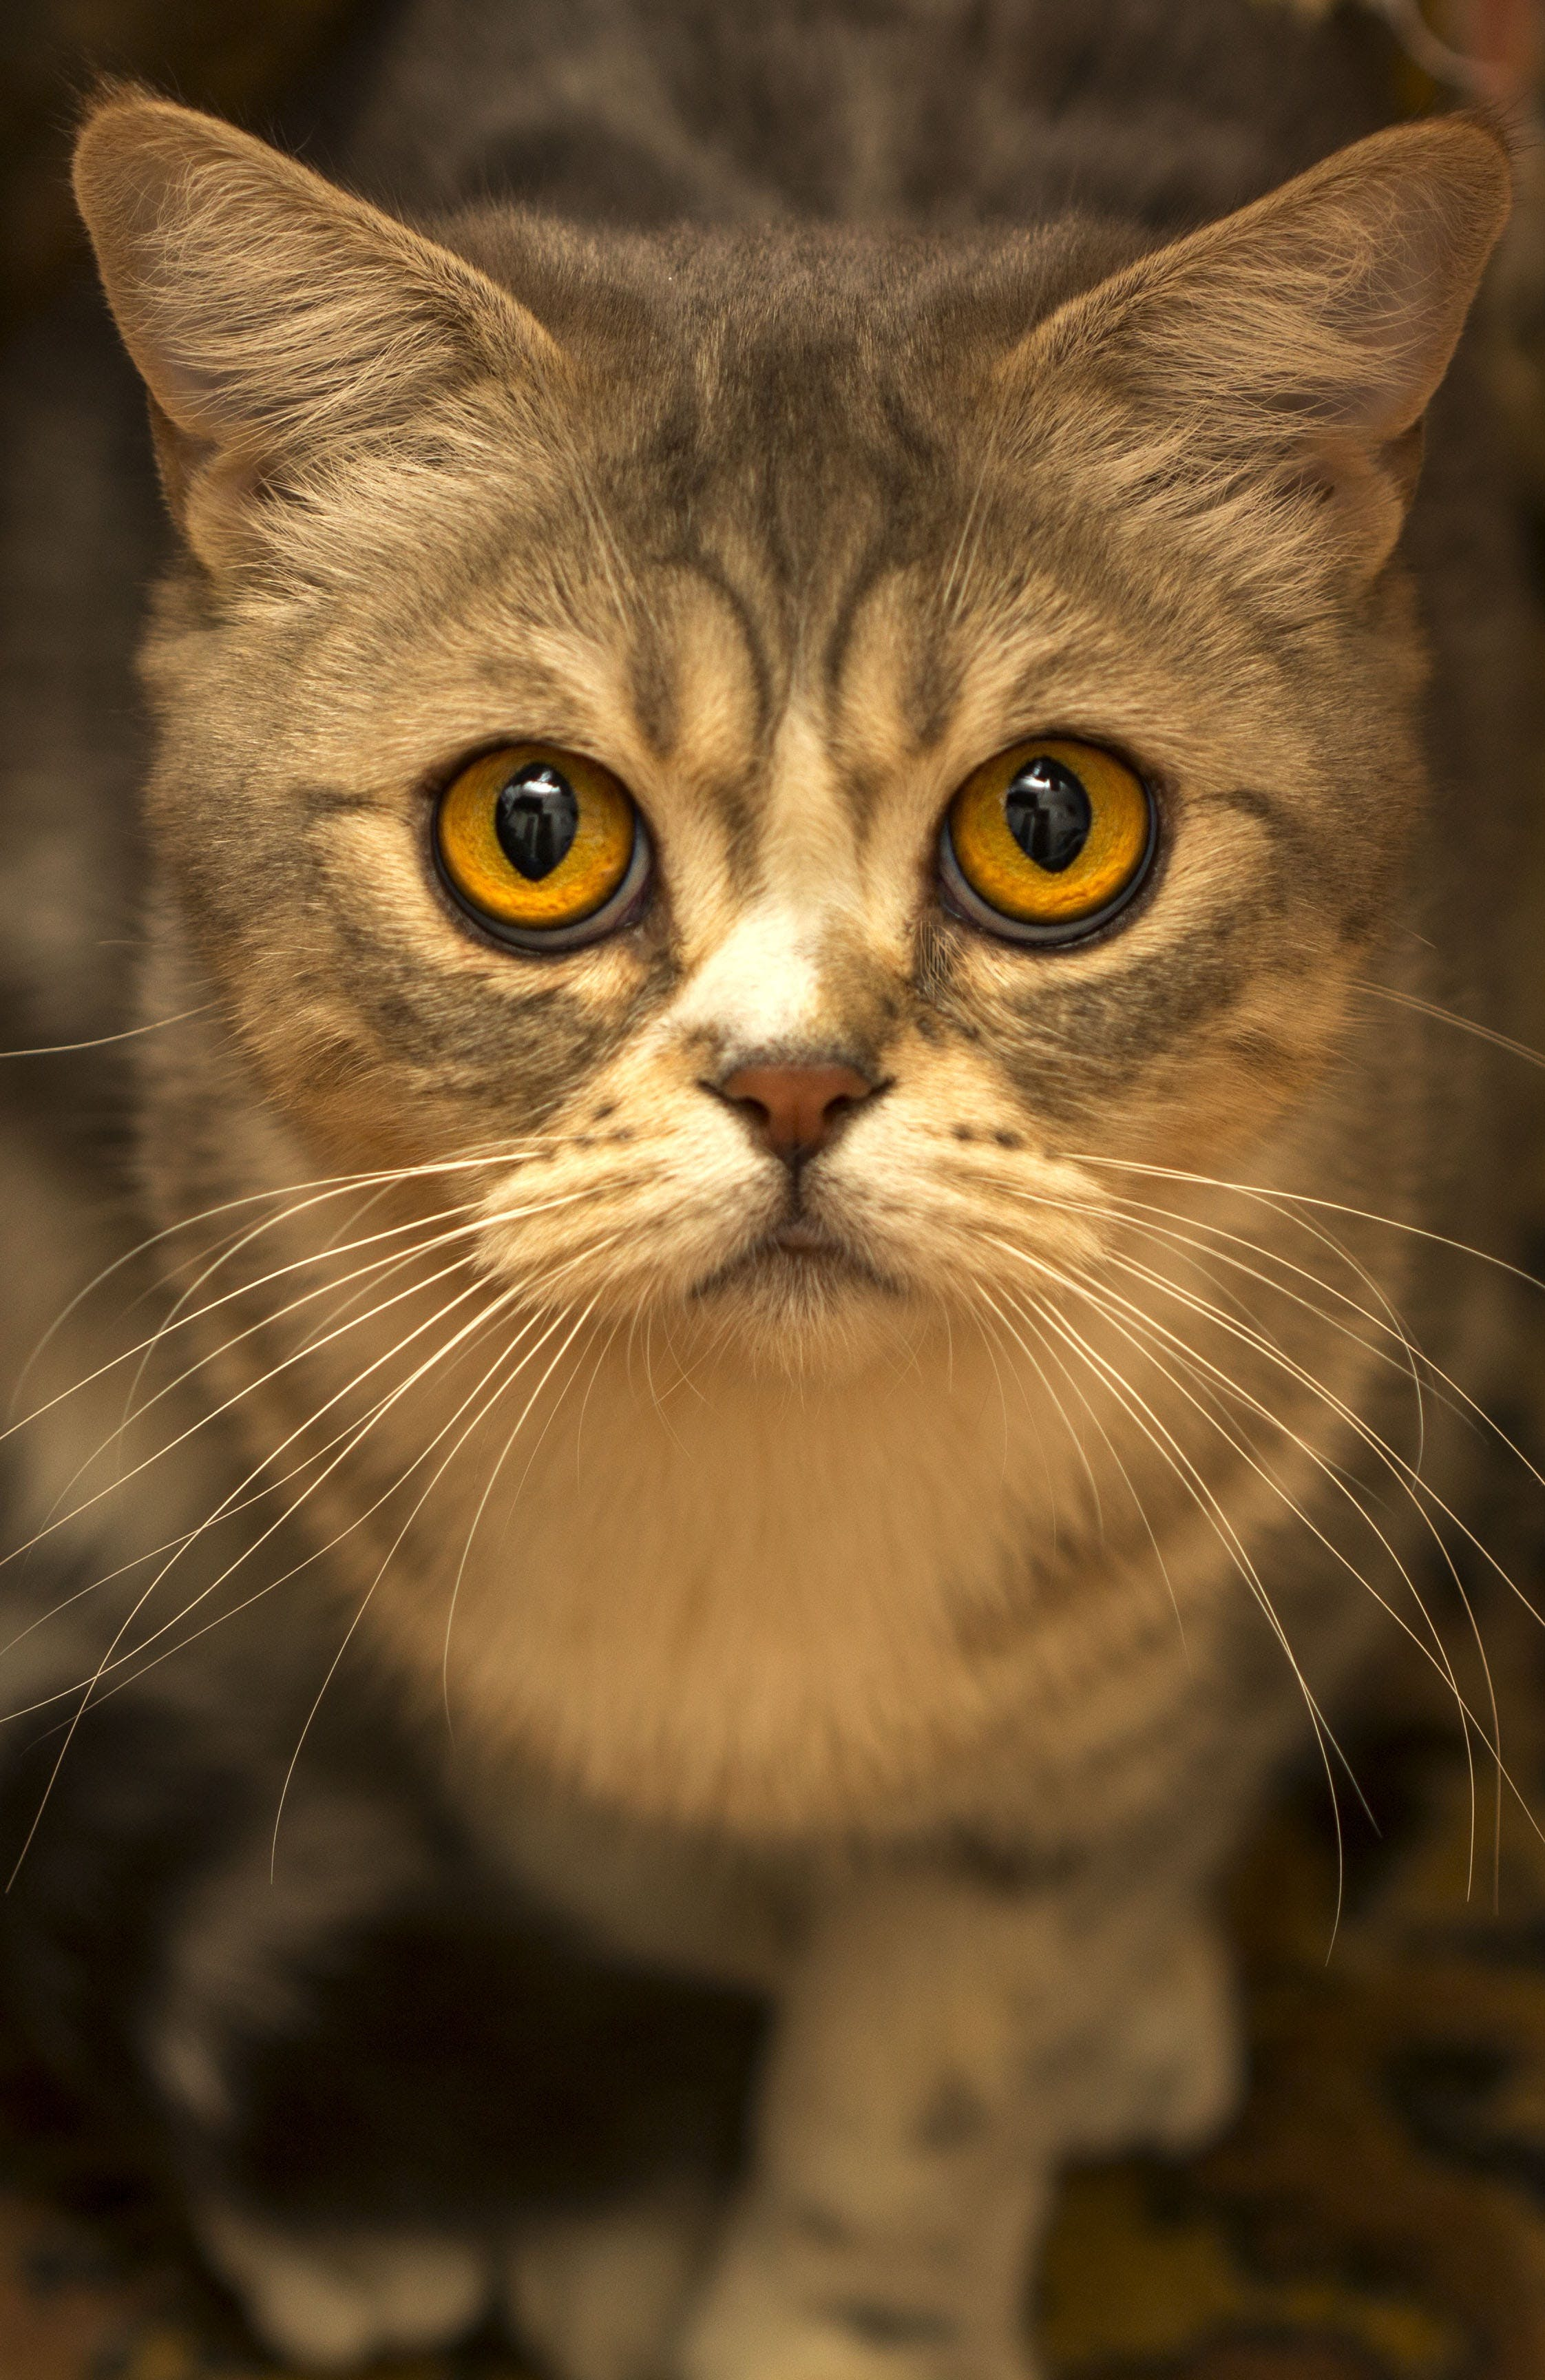 Brown Tabby Cat Close Up Photo